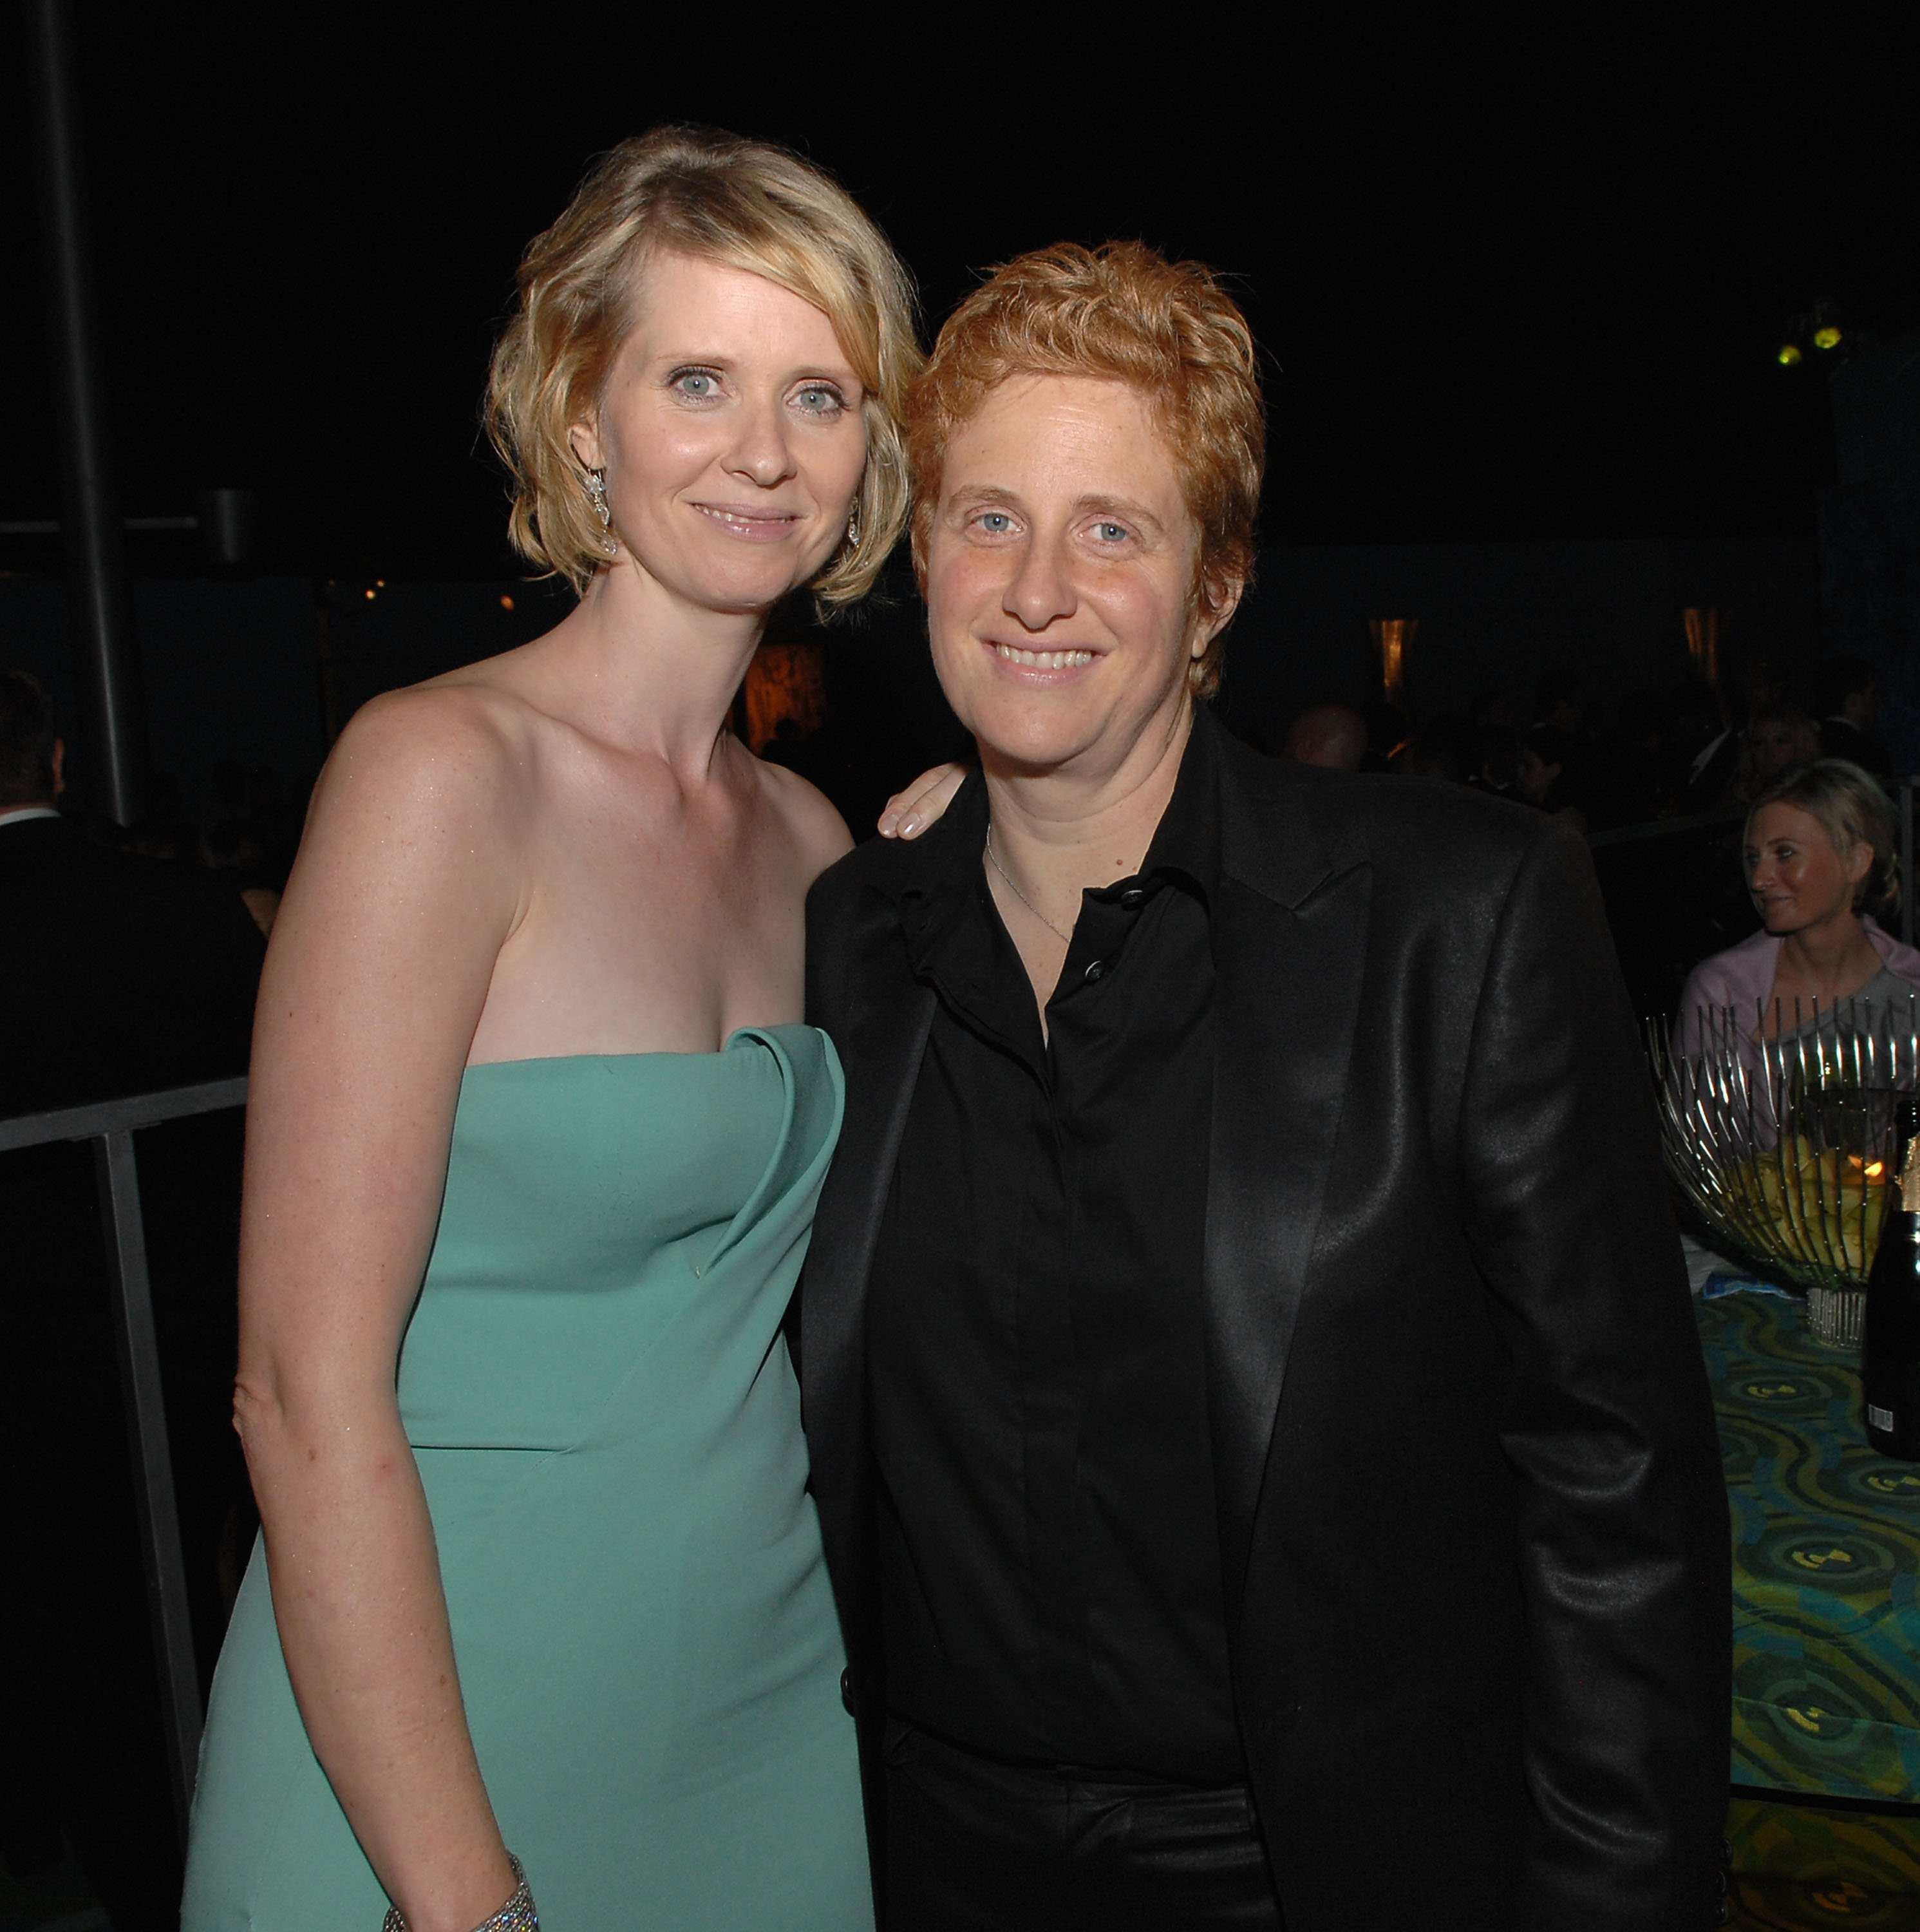 Cynthia Nixon (L) and partner Christine Mariononi attend HBO's Post Primetime Emmy Awards Reception at the Pacific Design Center on September 21, 2008, in Los Angeles, California.   Source: Getty Images.